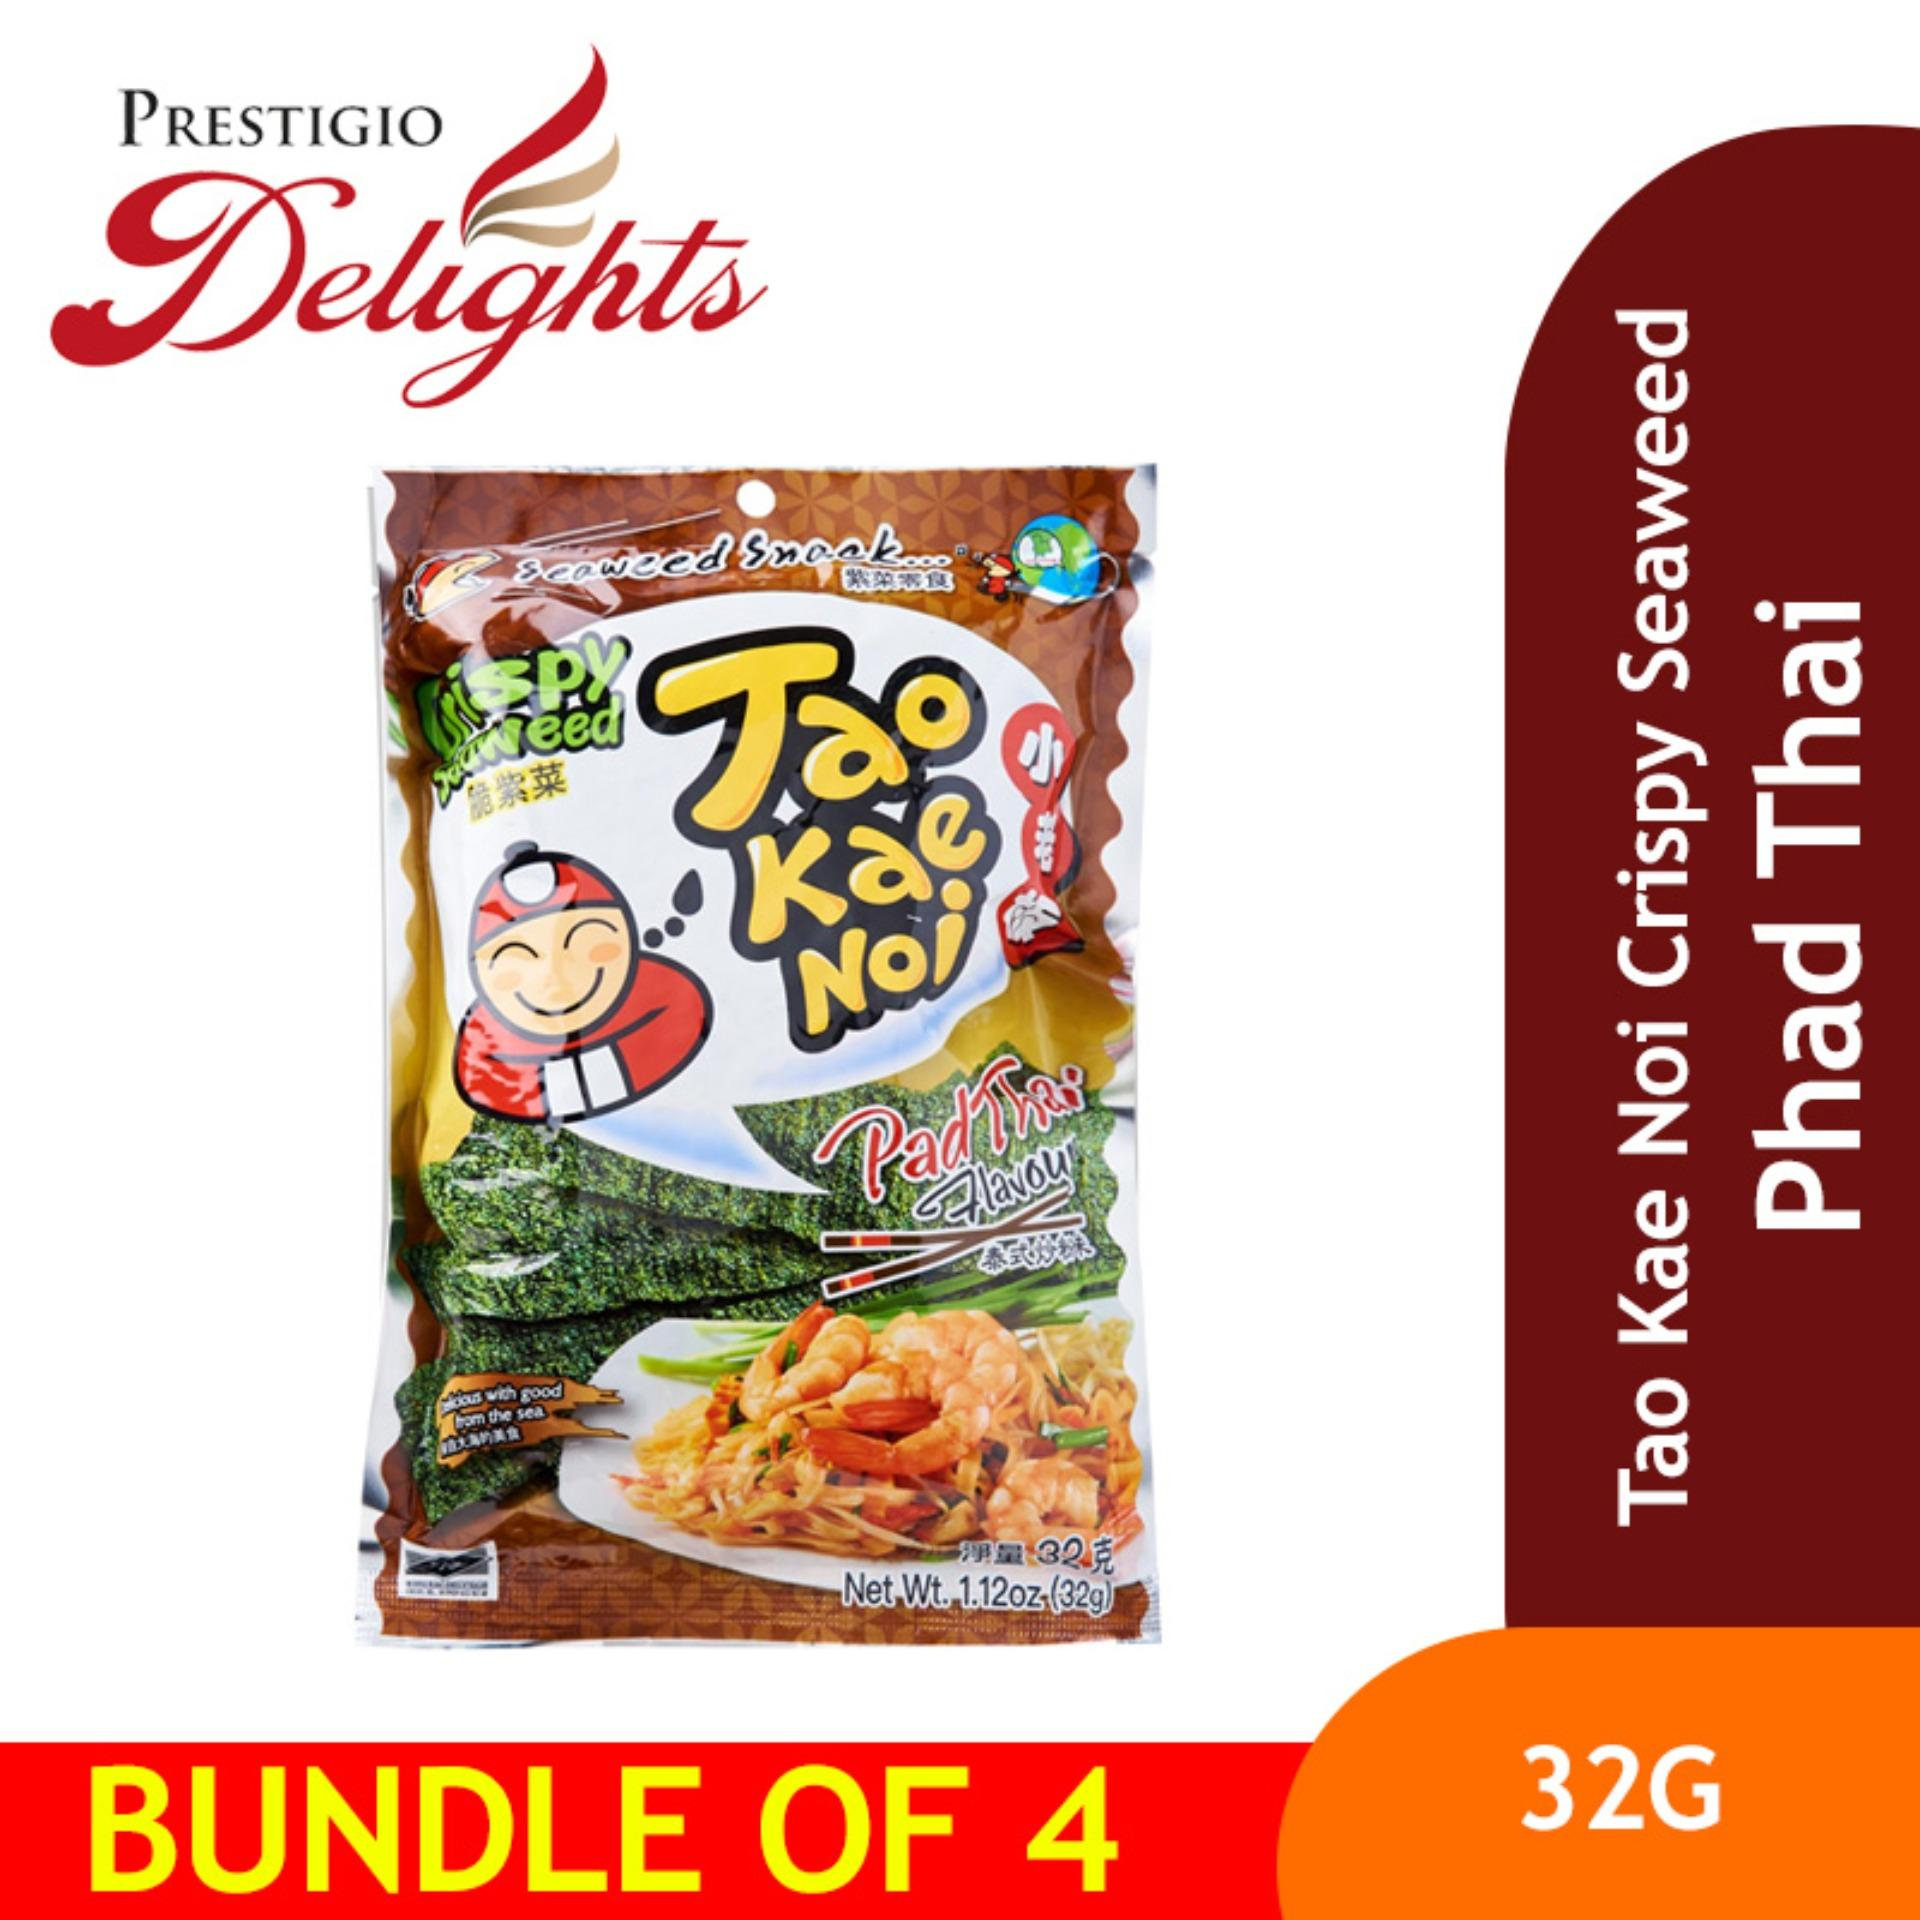 Tao Kae Noi Crispy Seaweed - 32g Phad Thai Bundle Of 4 By Prestigio Delights.